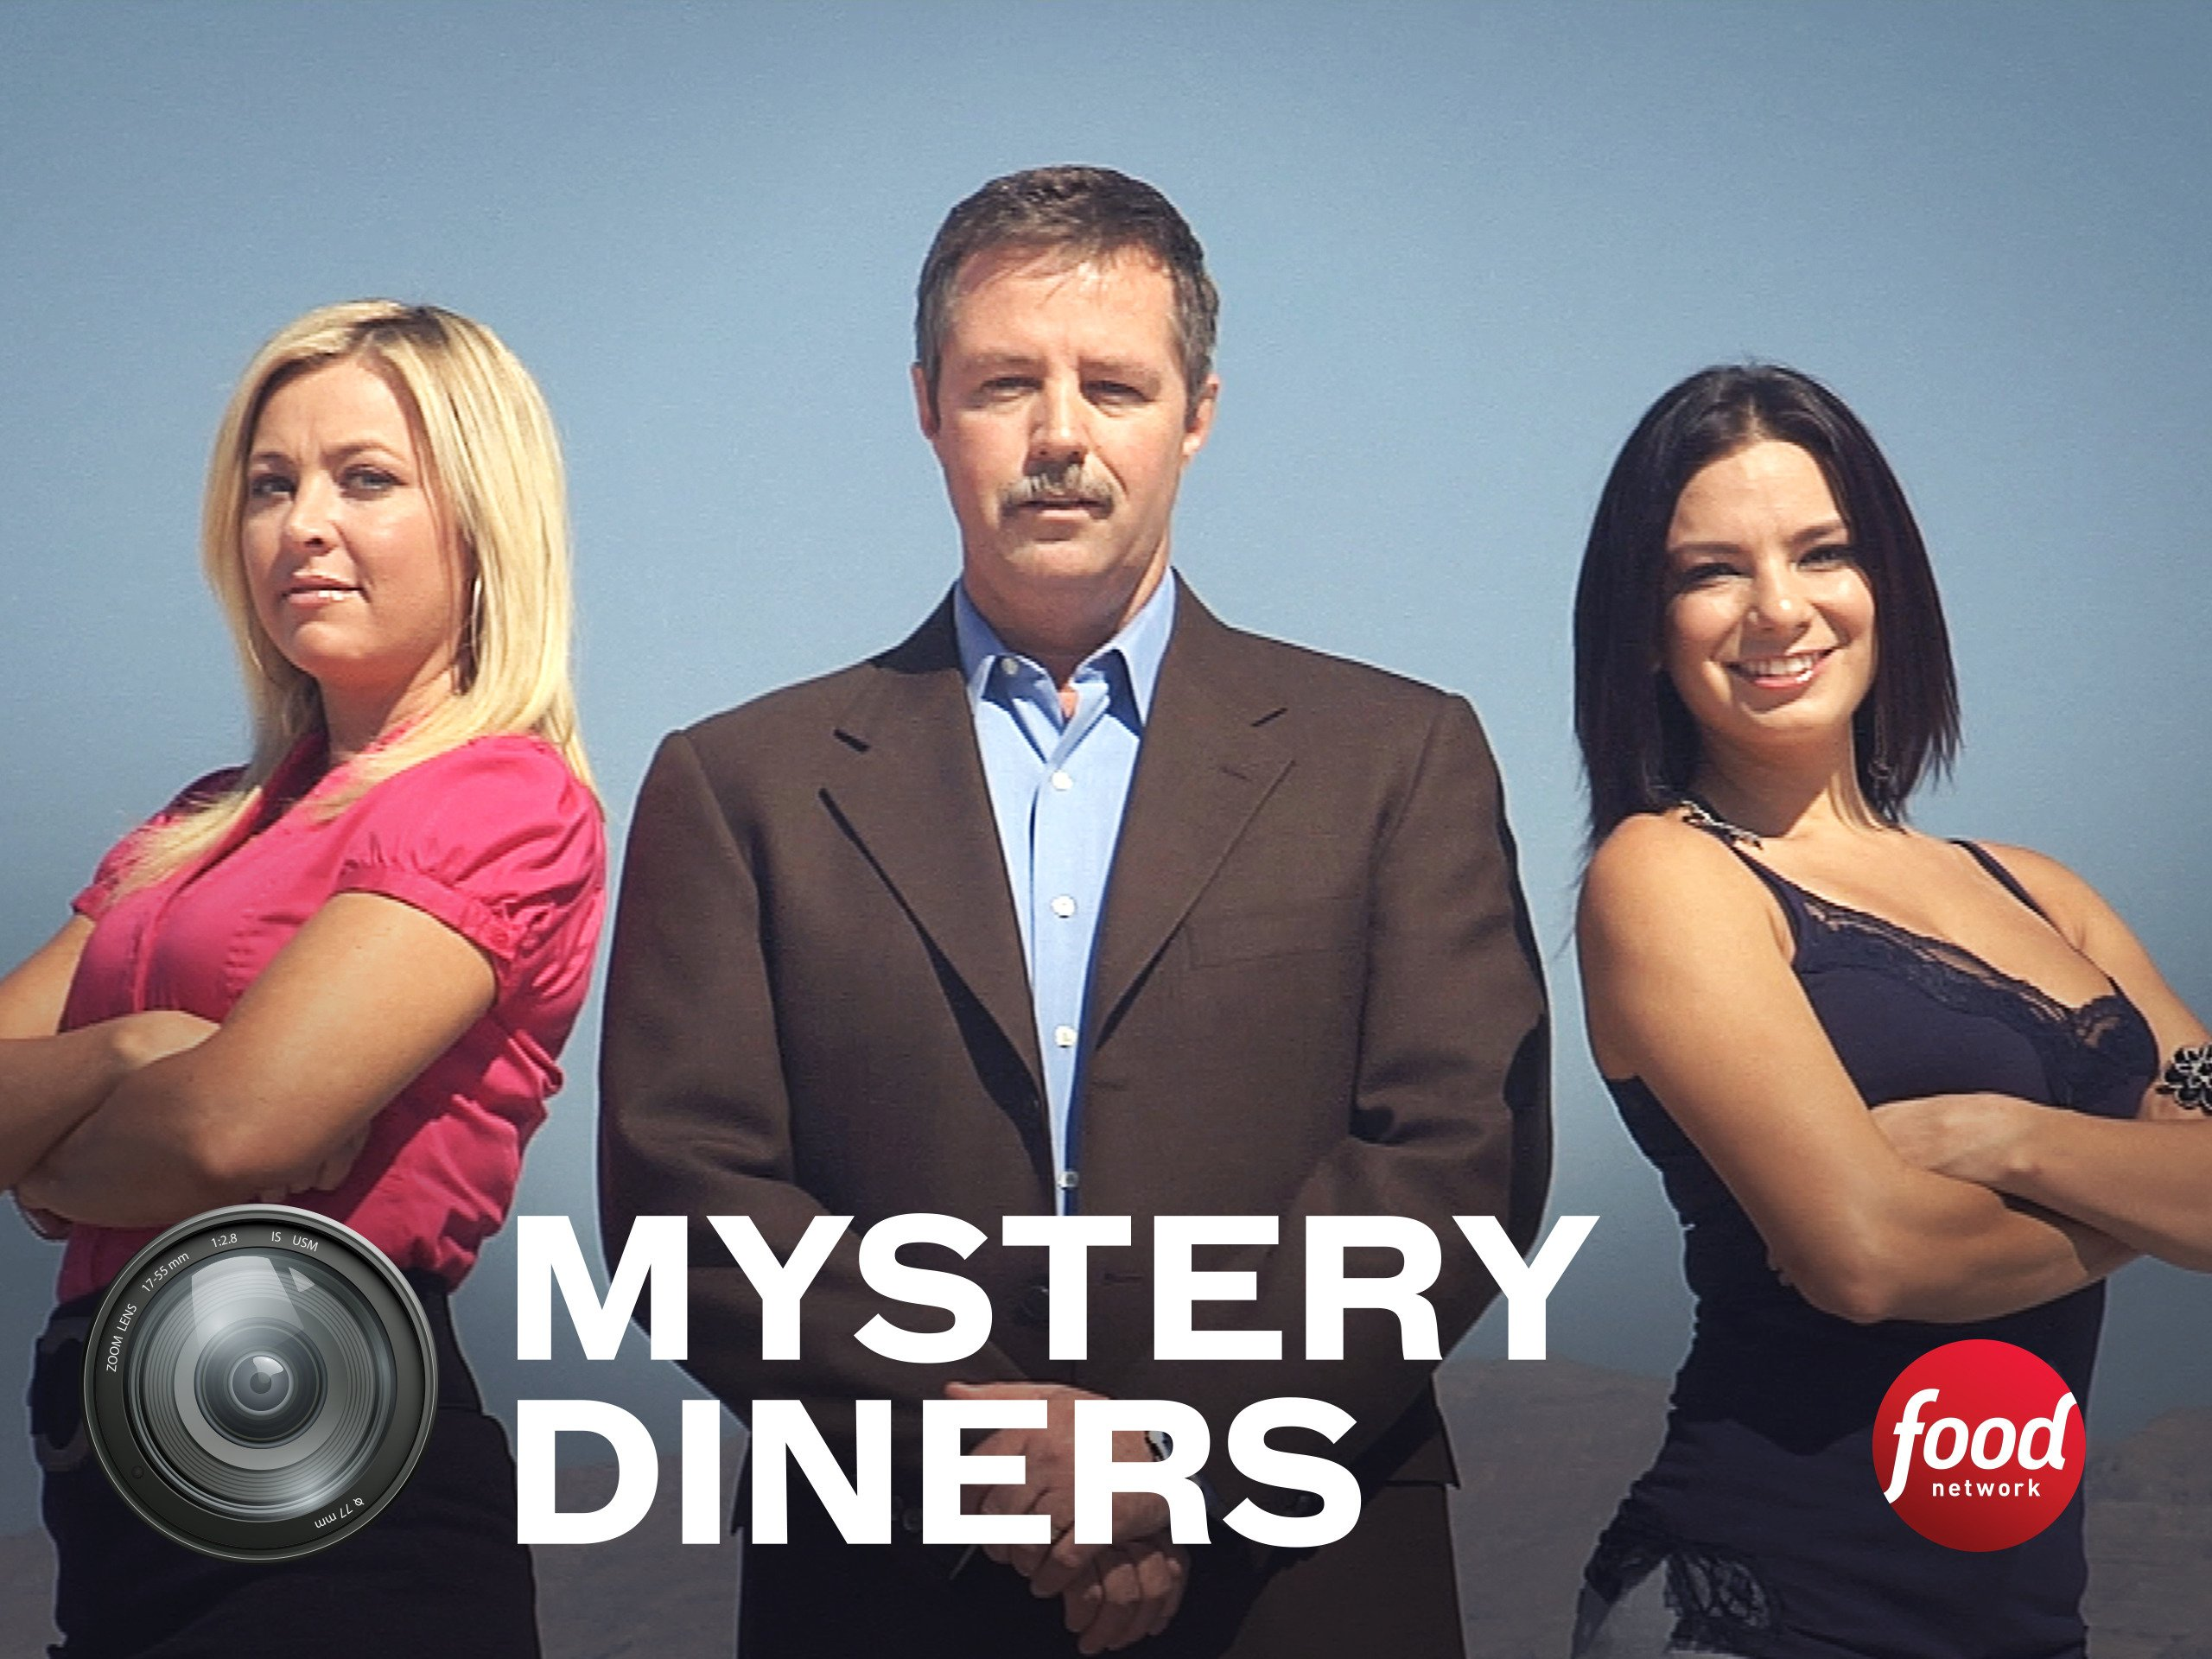 Mystery diners singles night